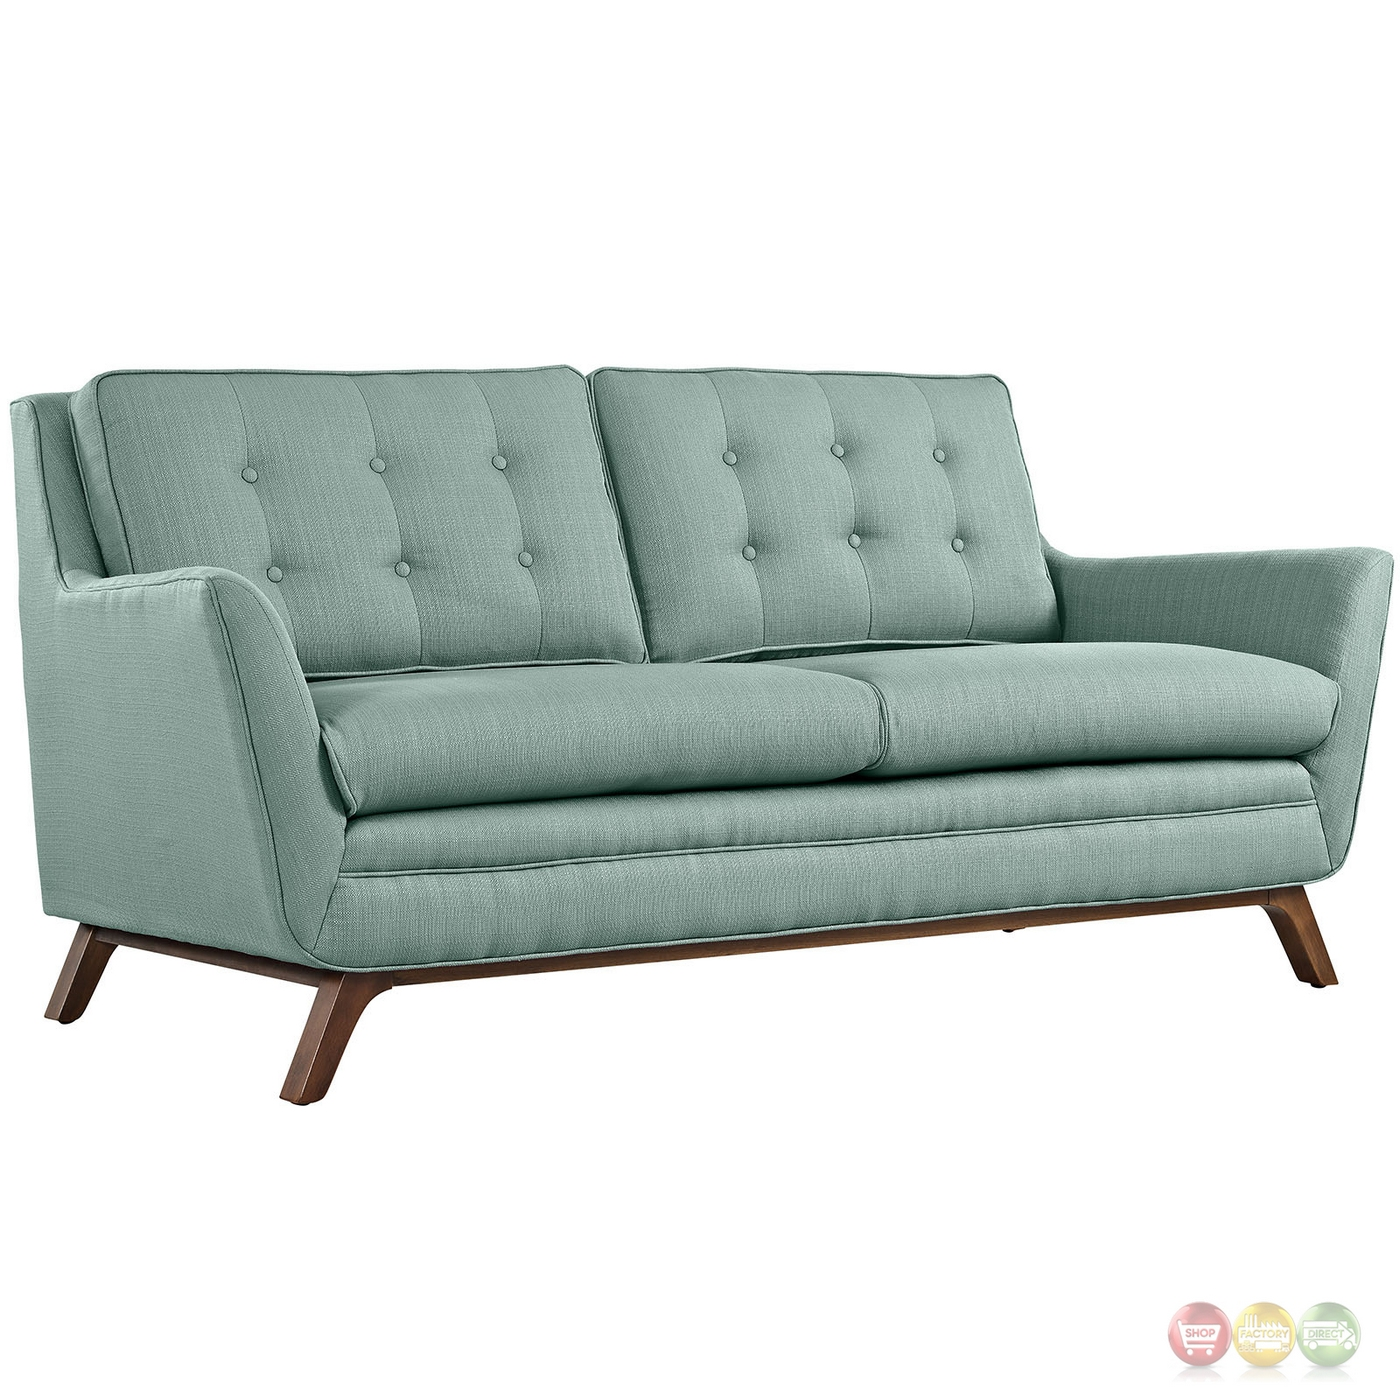 Beguile 2pc Upholstered Button tufted Sofa amp Loveseat Set  : beguile 2pc upholstered button tufted sofa loveseat set laguna 5 from shopfactorydirect.com size 1400 x 1400 jpeg 563kB